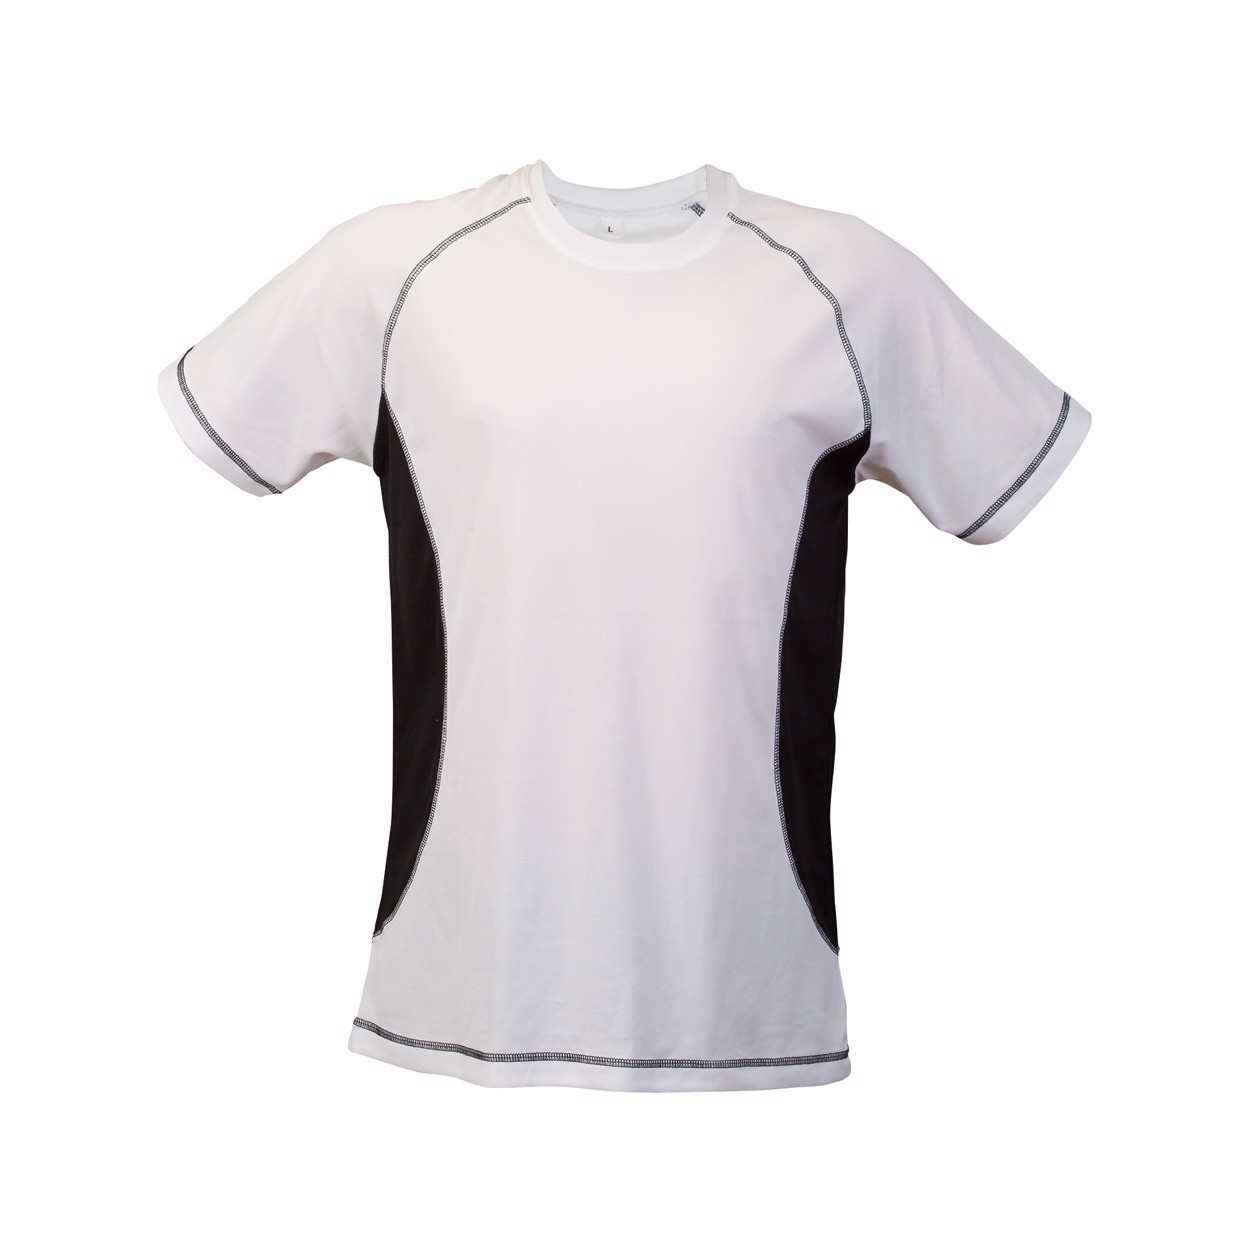 Sport T-Shirt Combi - Black / White / S